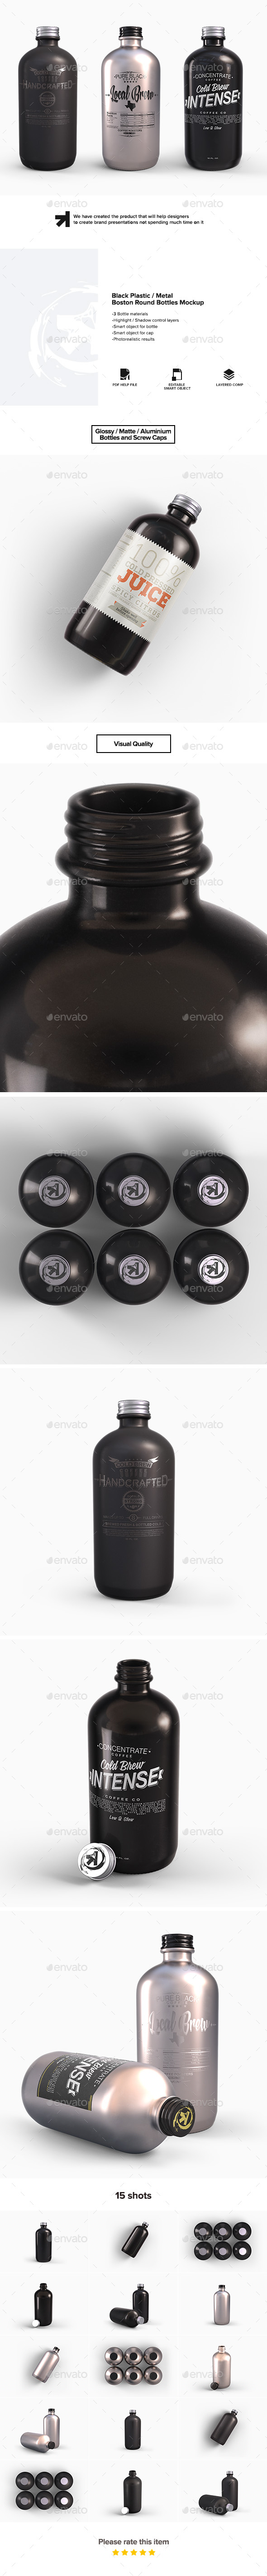 Plastic Metal Boston Round Bottles Mockup - Food and Drink Packaging